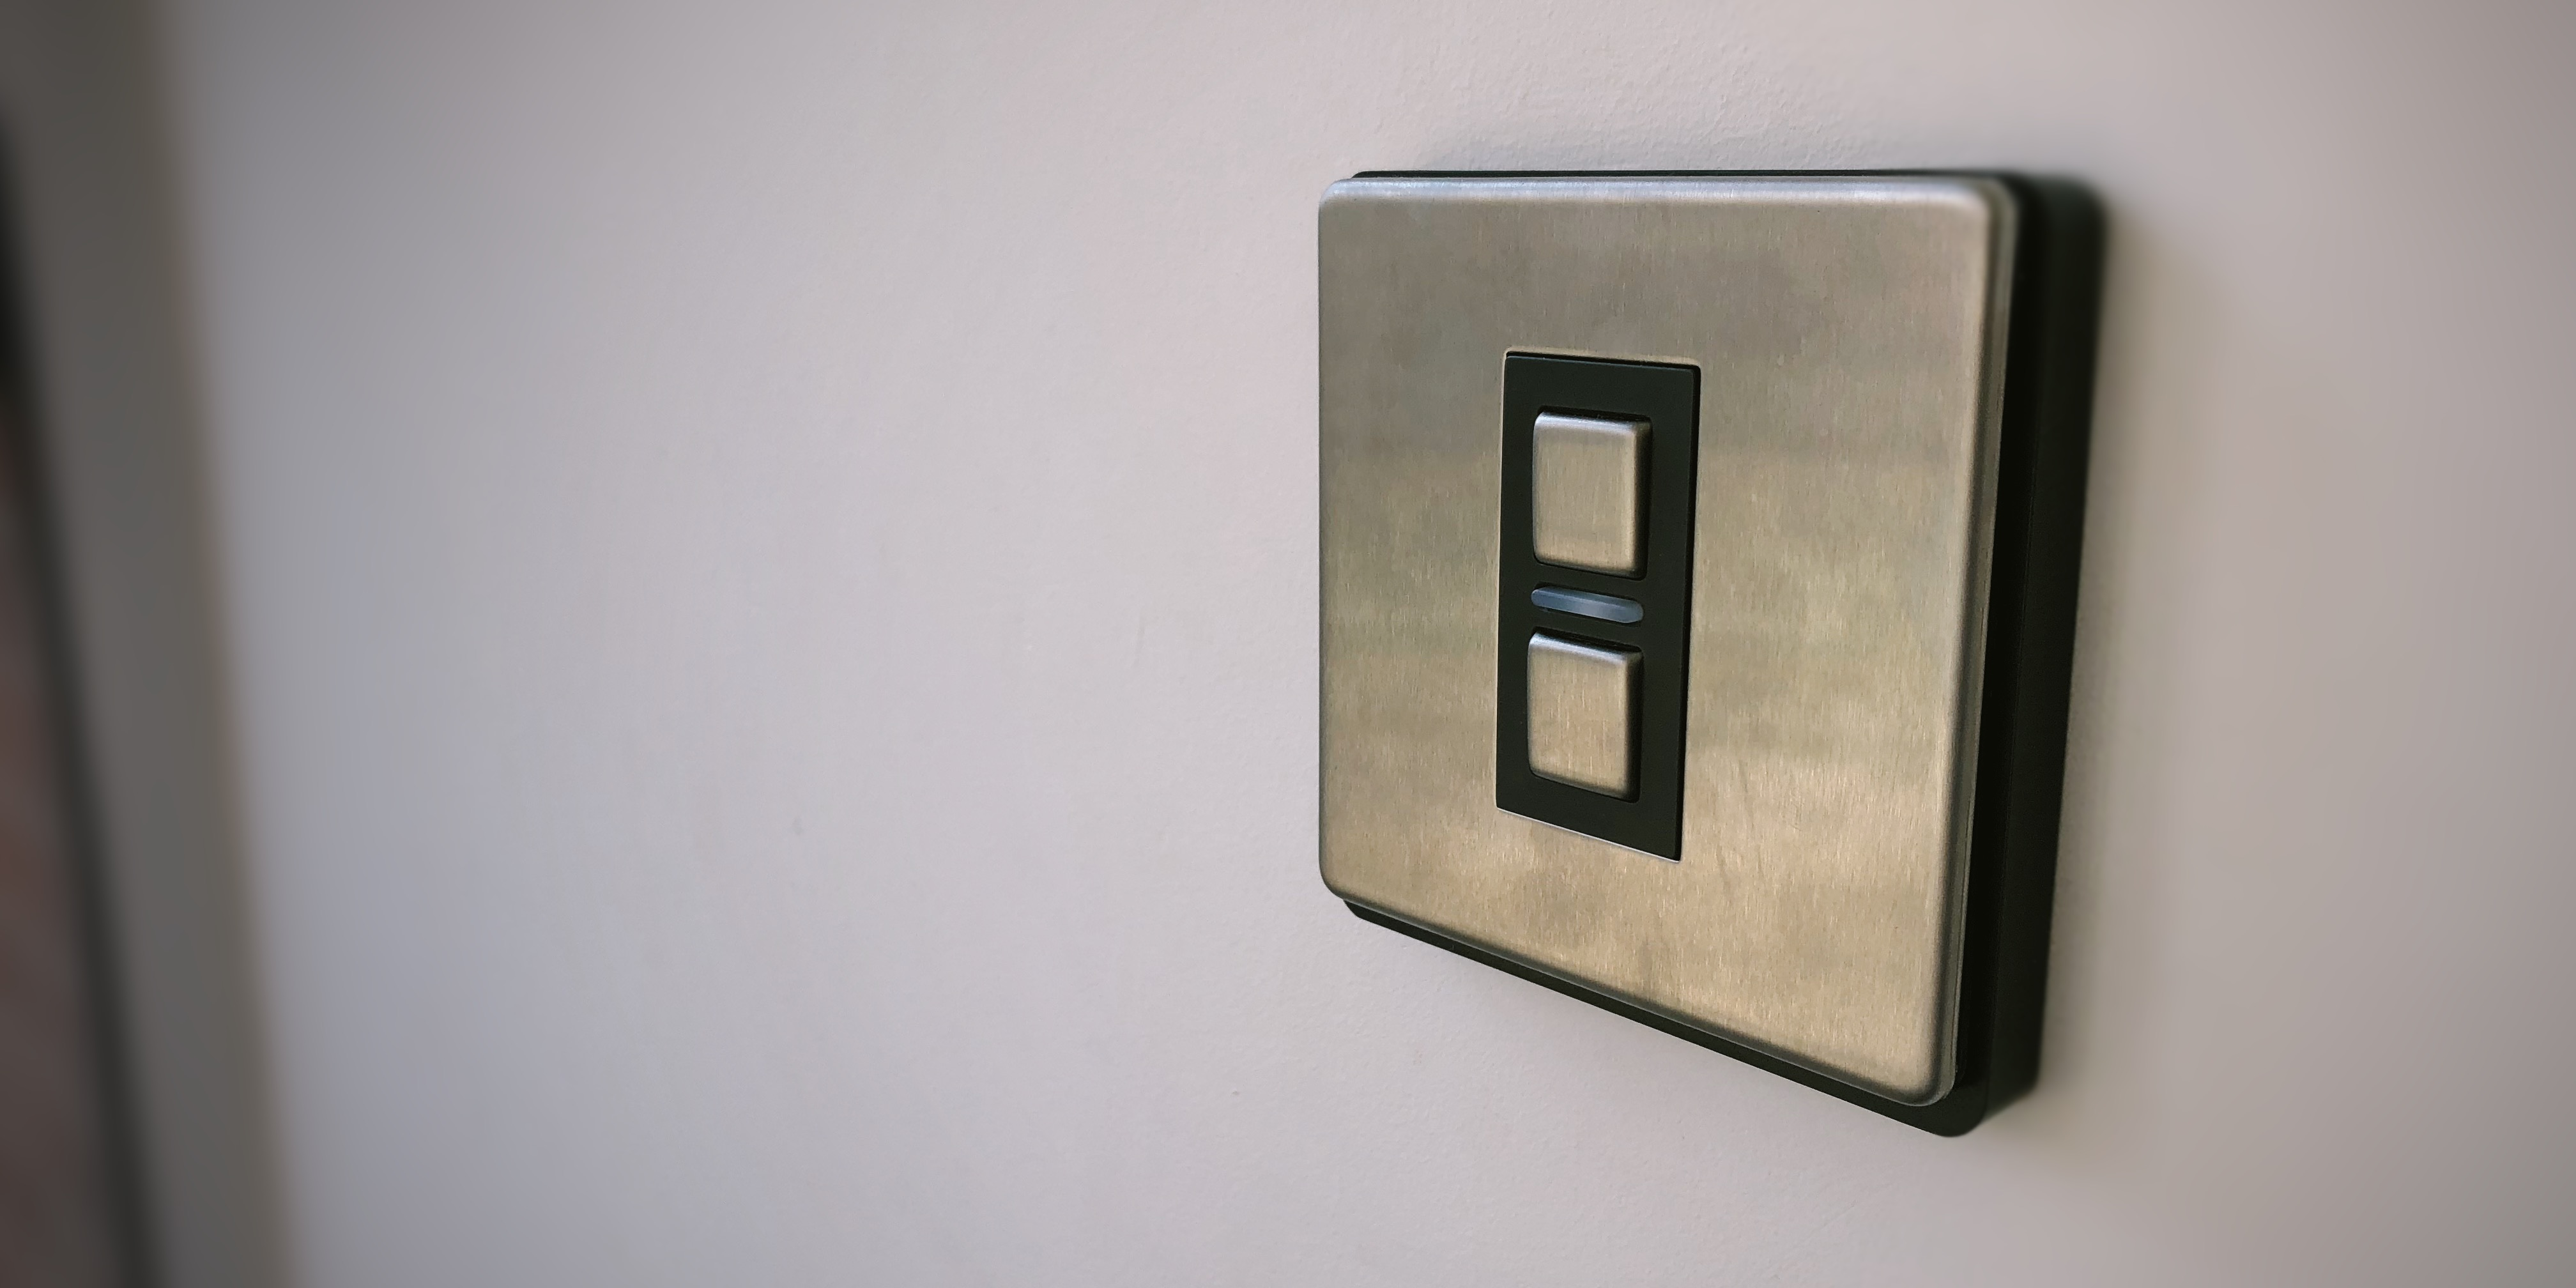 Switch Light Review Lightwave Light Switch The Best Uk Homekit Solution For